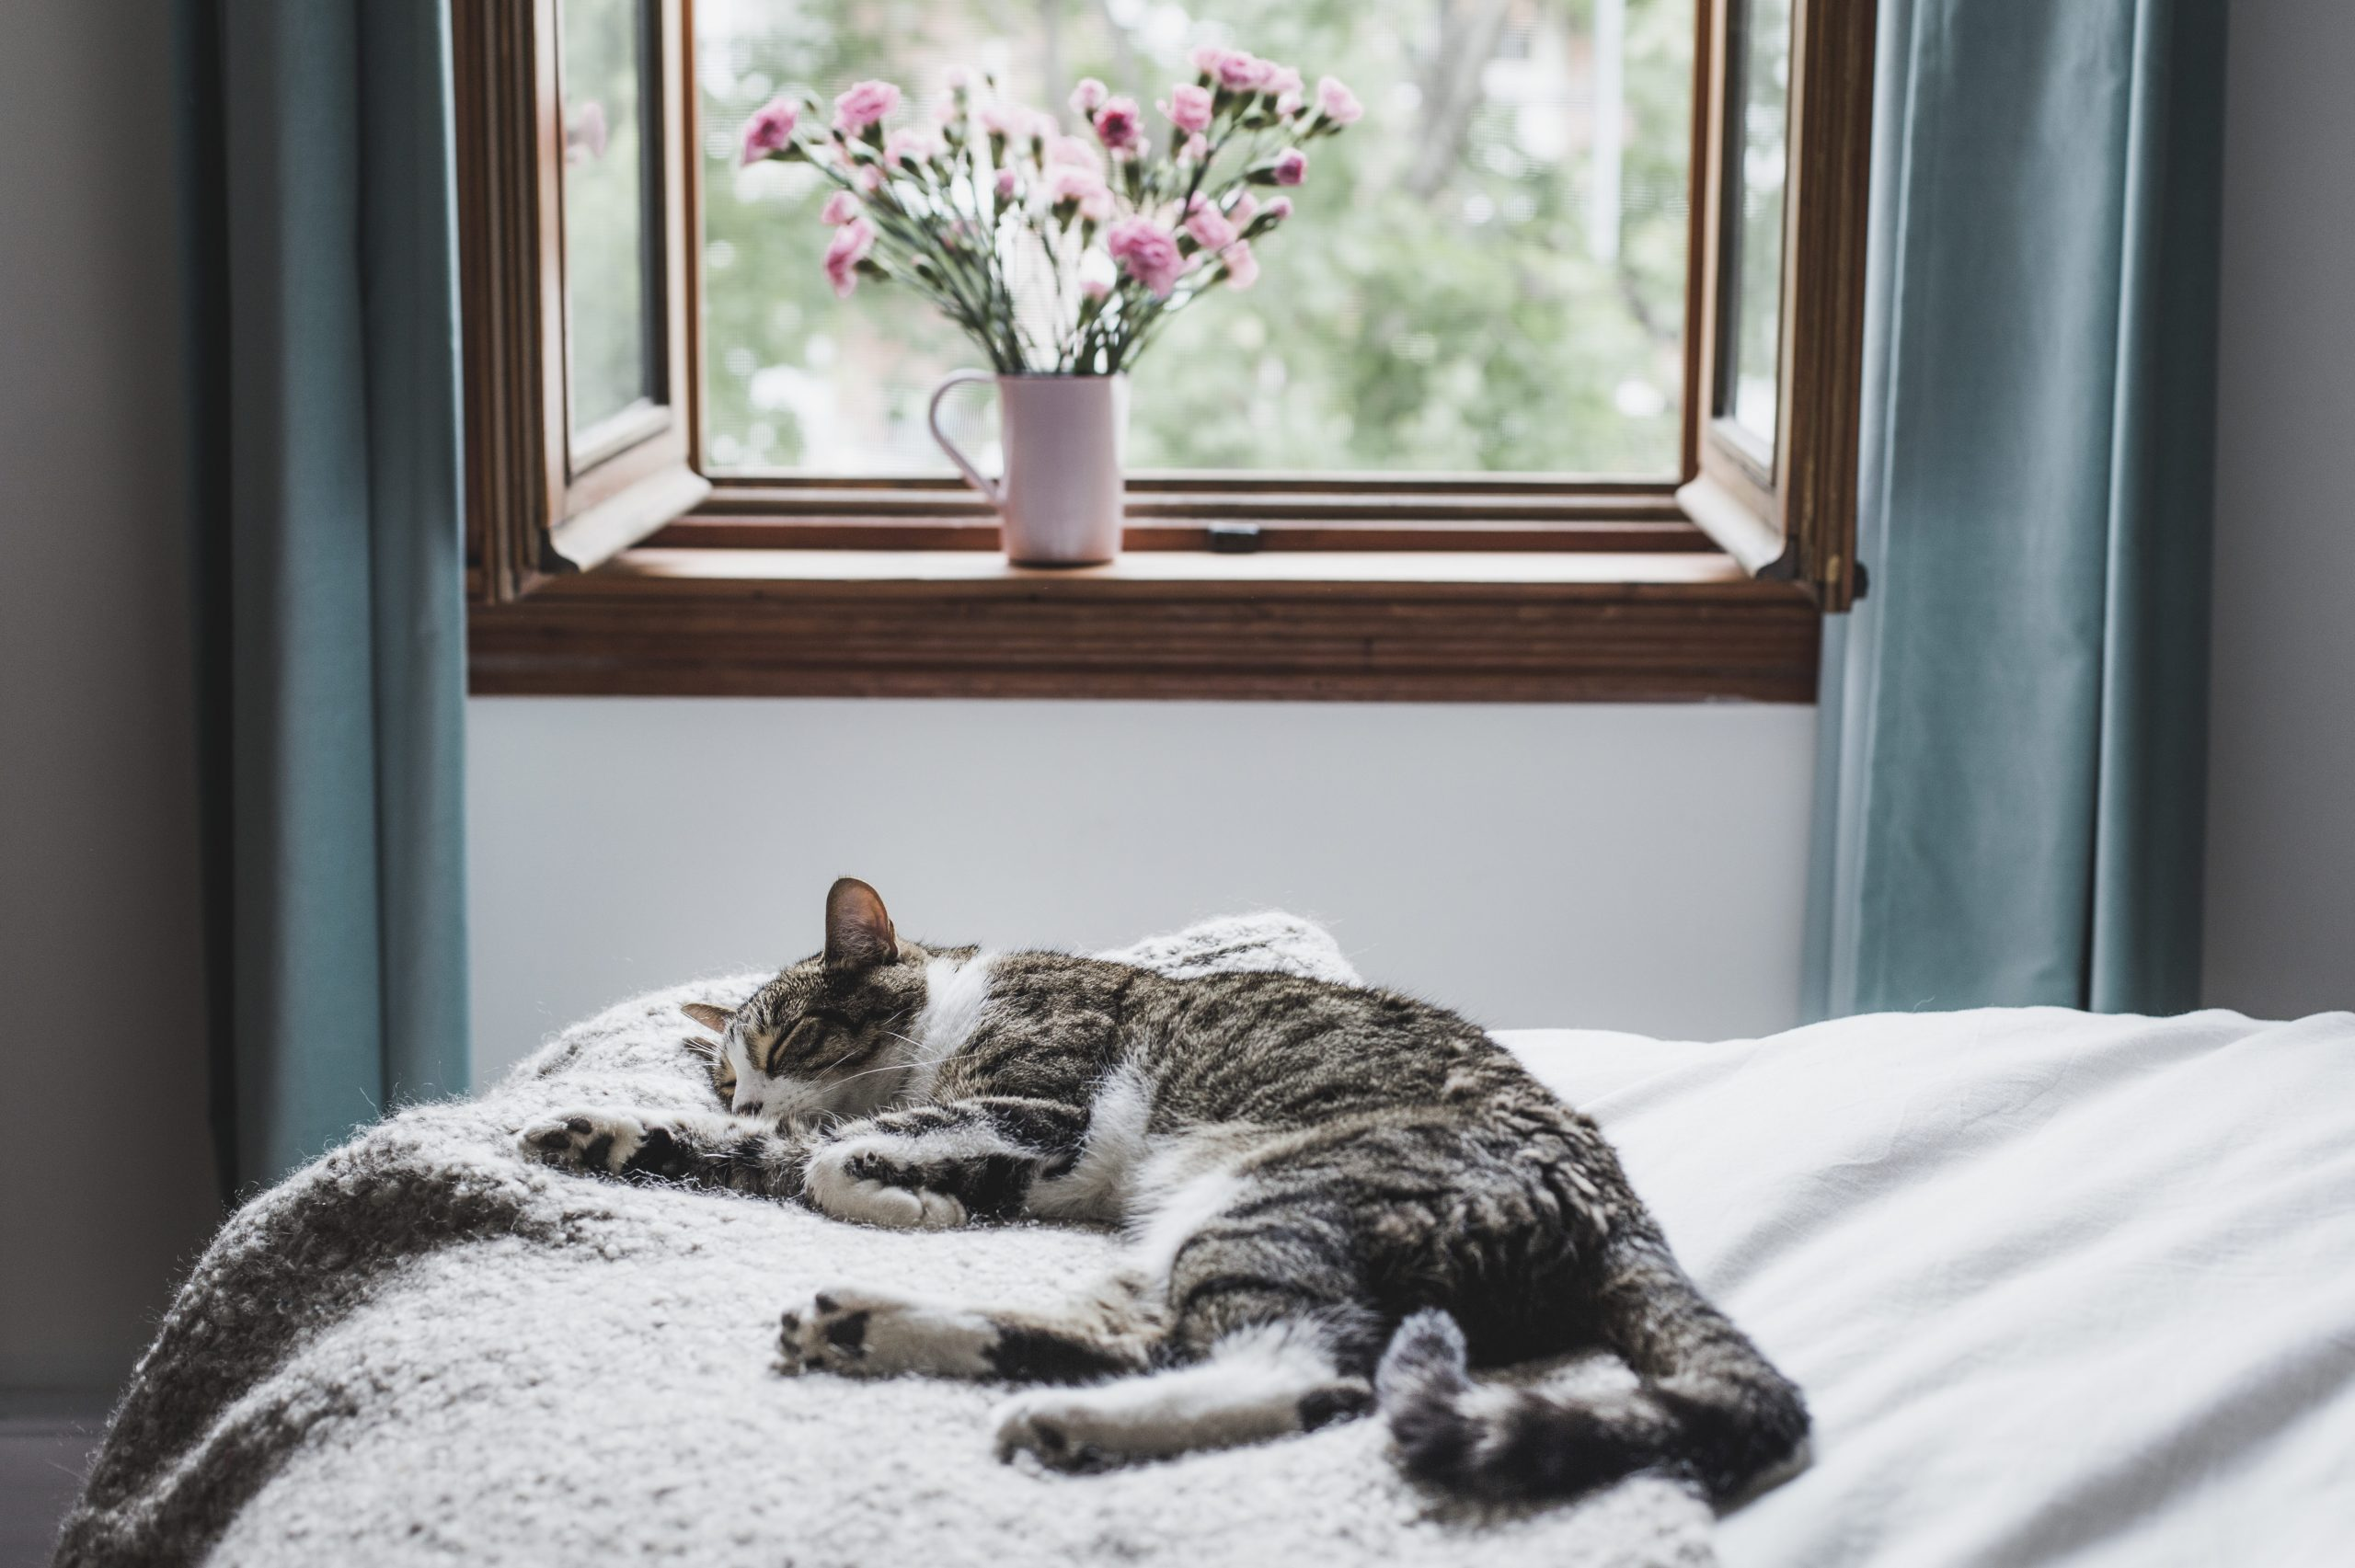 Tabby cat sleeping on a bed